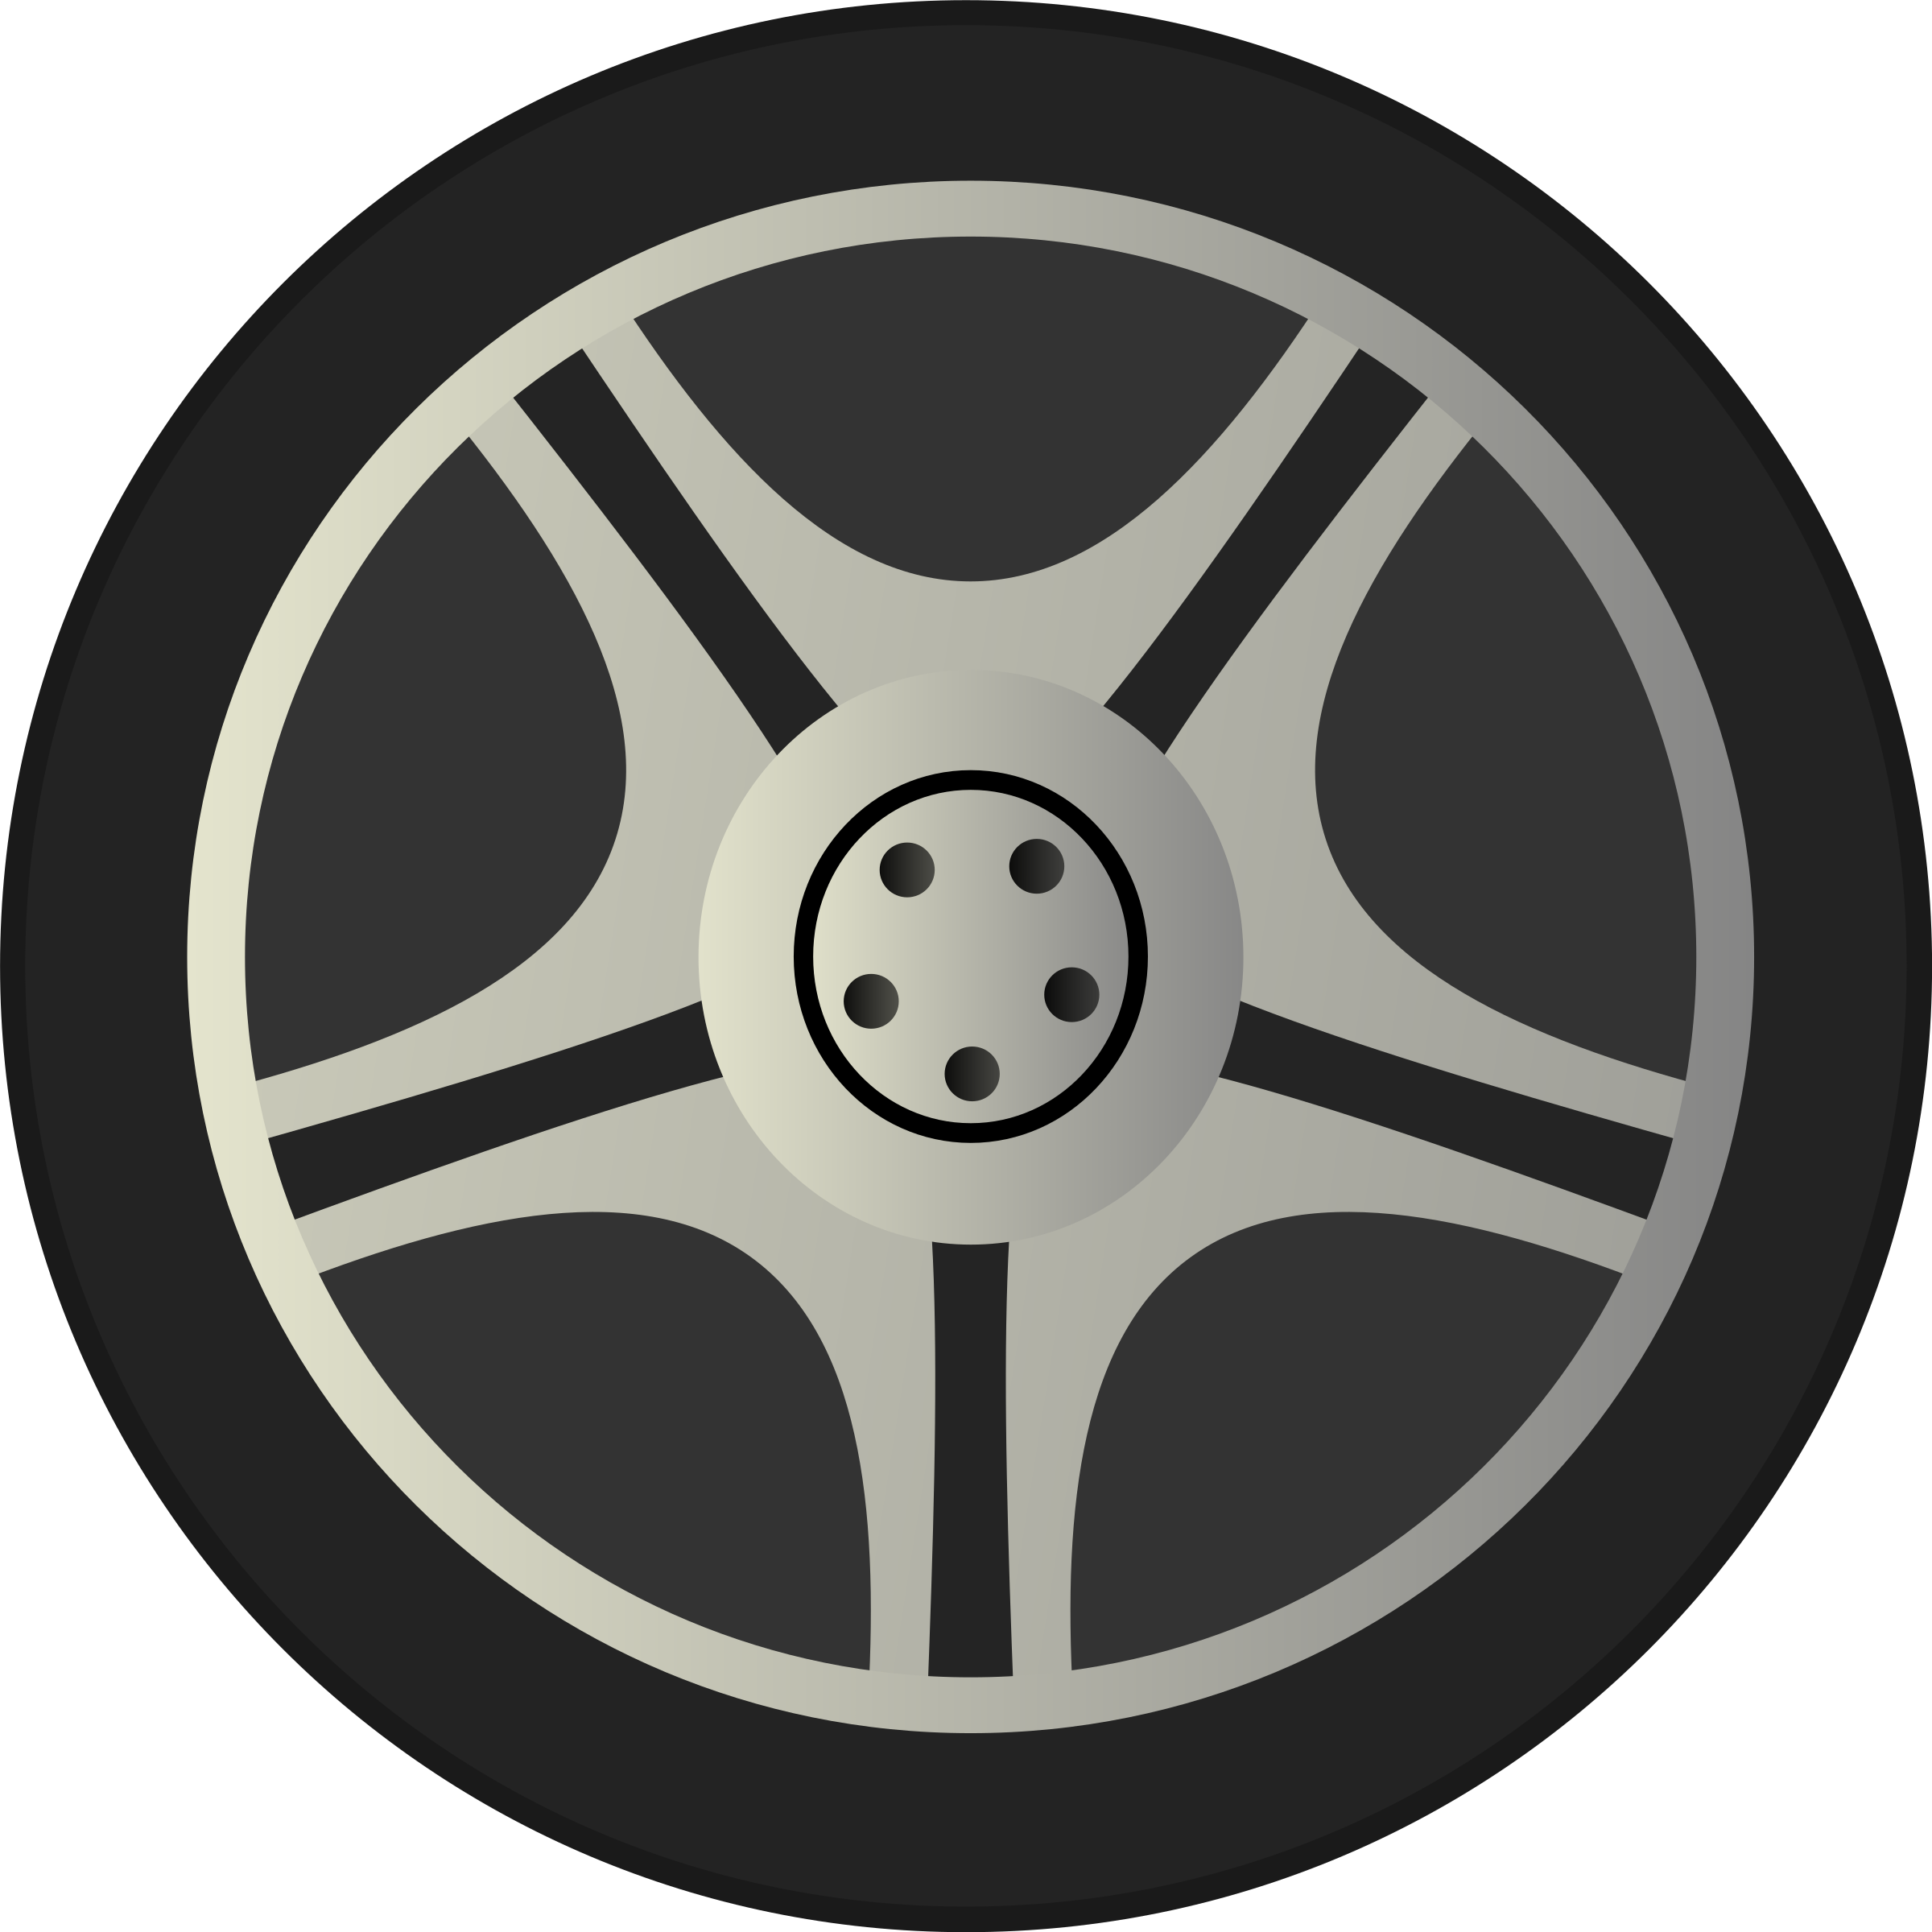 collection of car. Wheel clipart cute